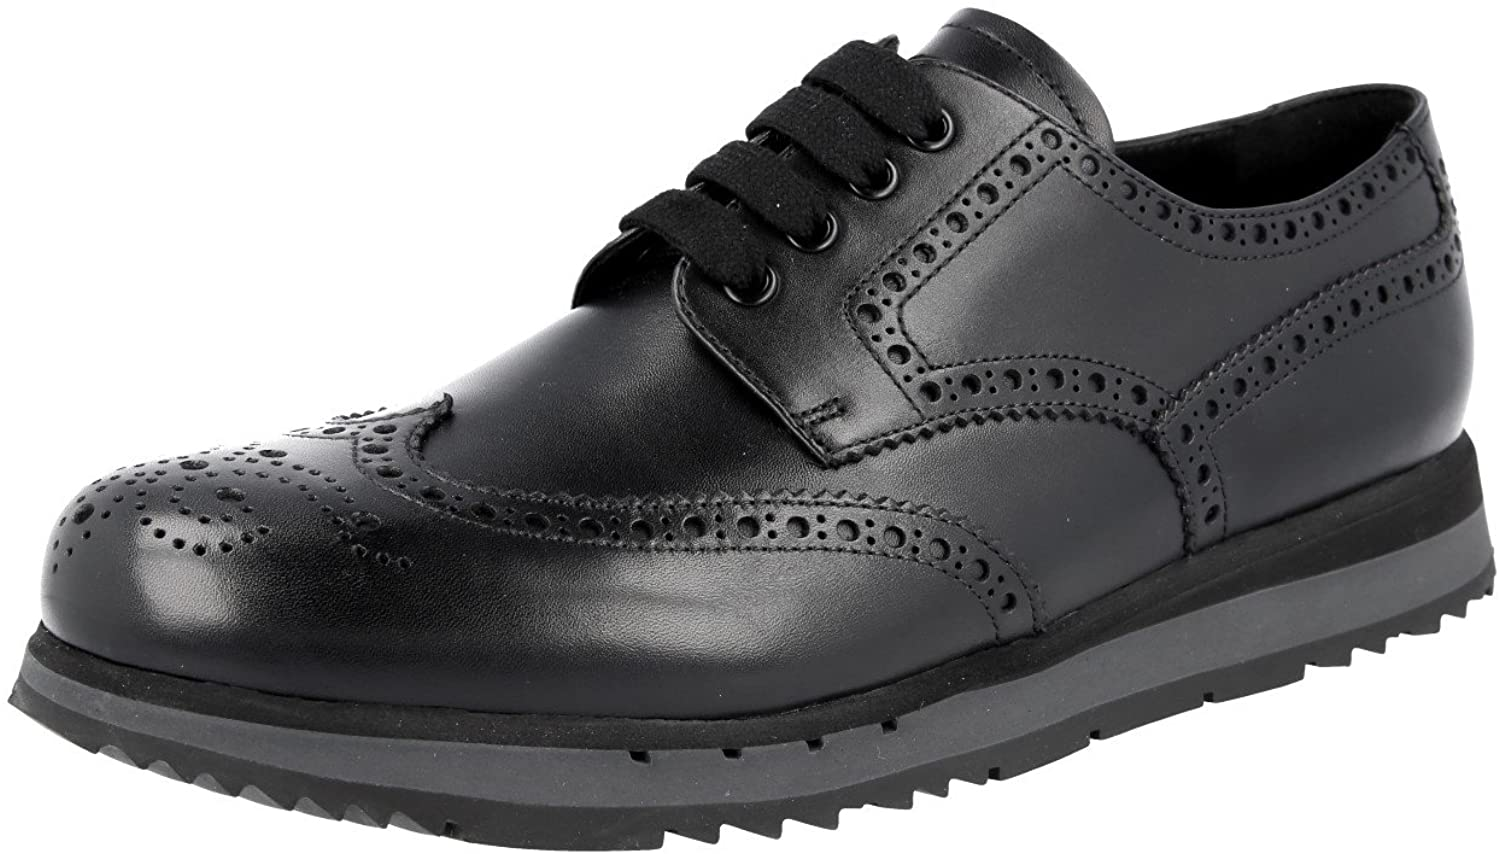 Prada Men's 4E2604 Full Brogue Leather Business Shoes